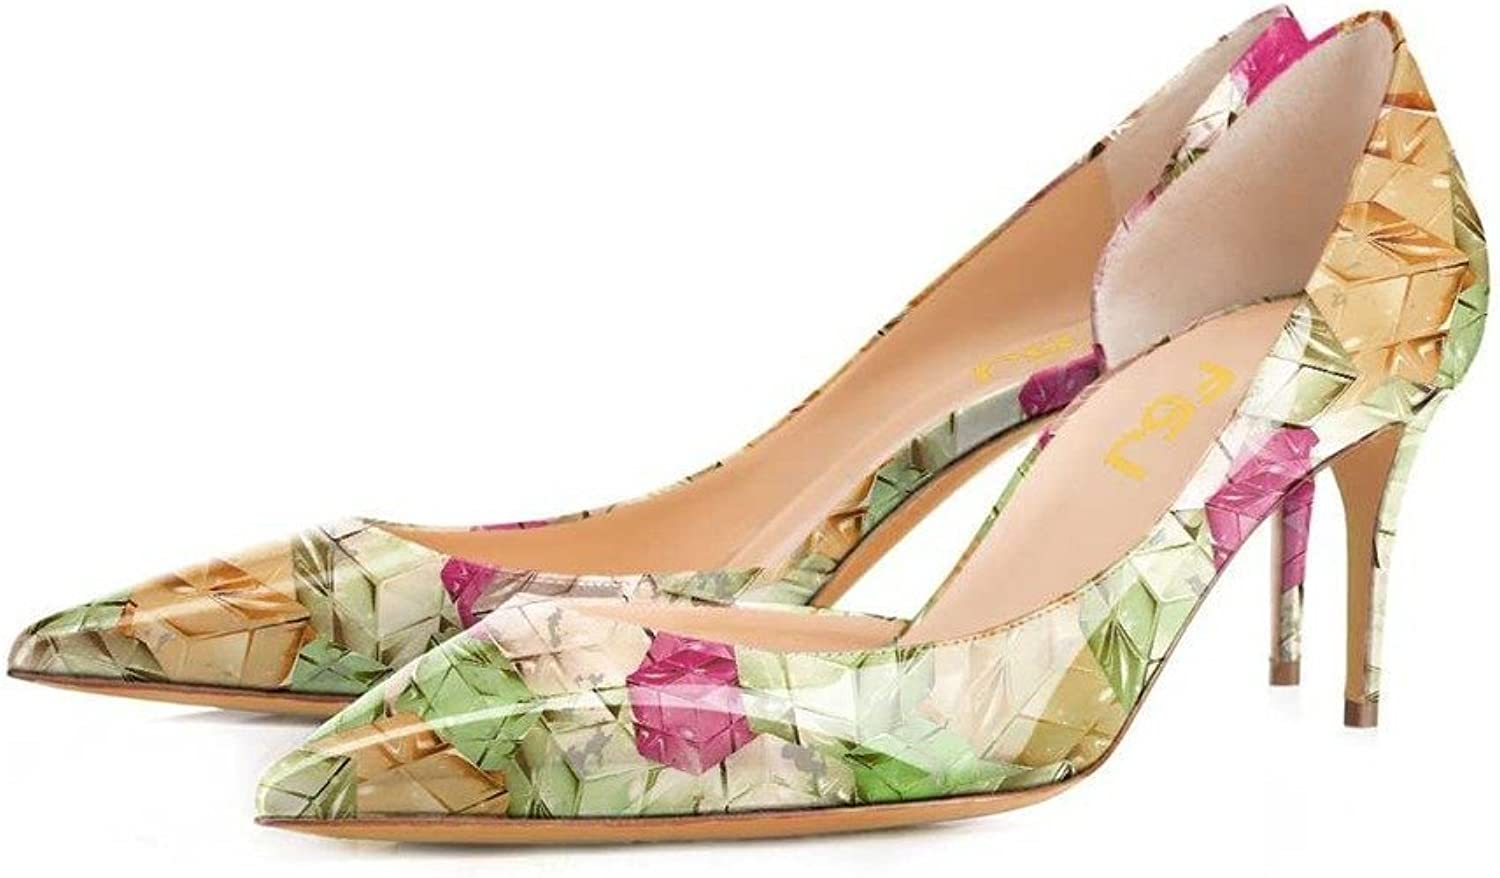 FSJ Fashion D'Orsay Pumps Multicolord Mid Heels Party Dress shoes for Women 8 cm Size 4-15 US